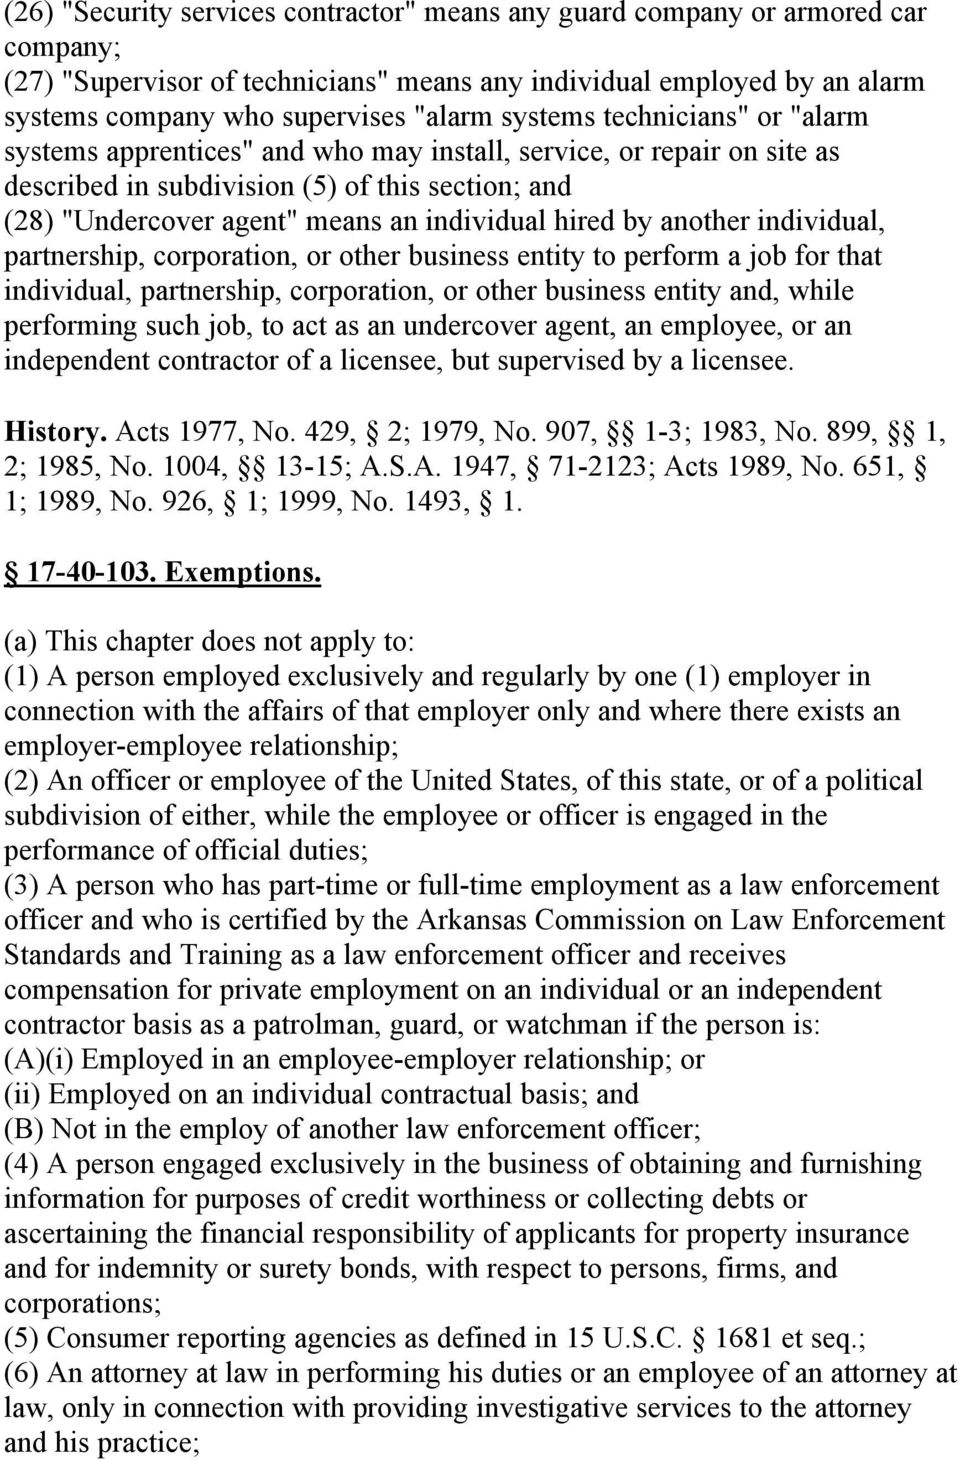 hired by another individual, partnership, corporation, or other business entity to perform a job for that individual, partnership, corporation, or other business entity and, while performing such